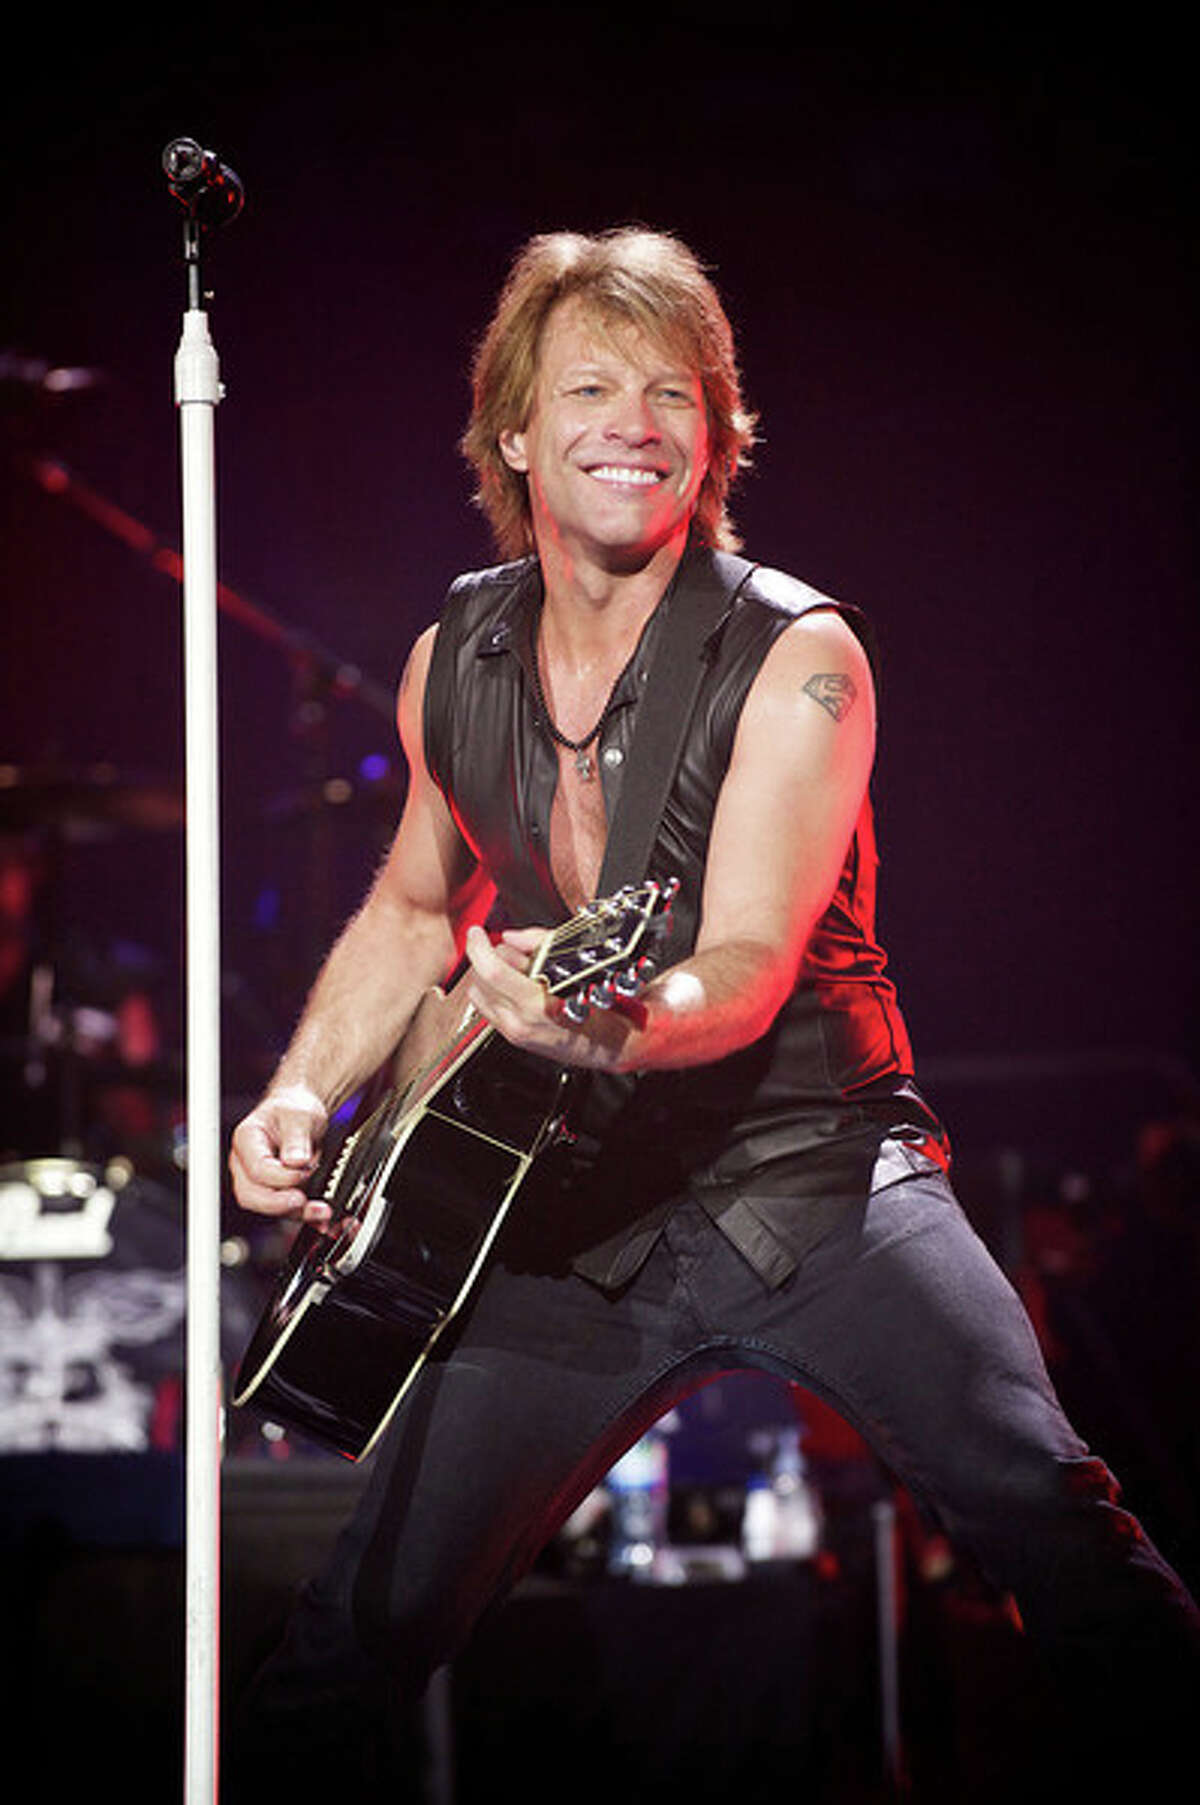 """""""Bon Jovi Inside Out"""" will be screened on Tuesday, Nov. 27, at 8 p.m., in 600 movie theaters throughout the nation. Among them is AMC Loews Danbury 16, at 4 International Drive in Danbury."""